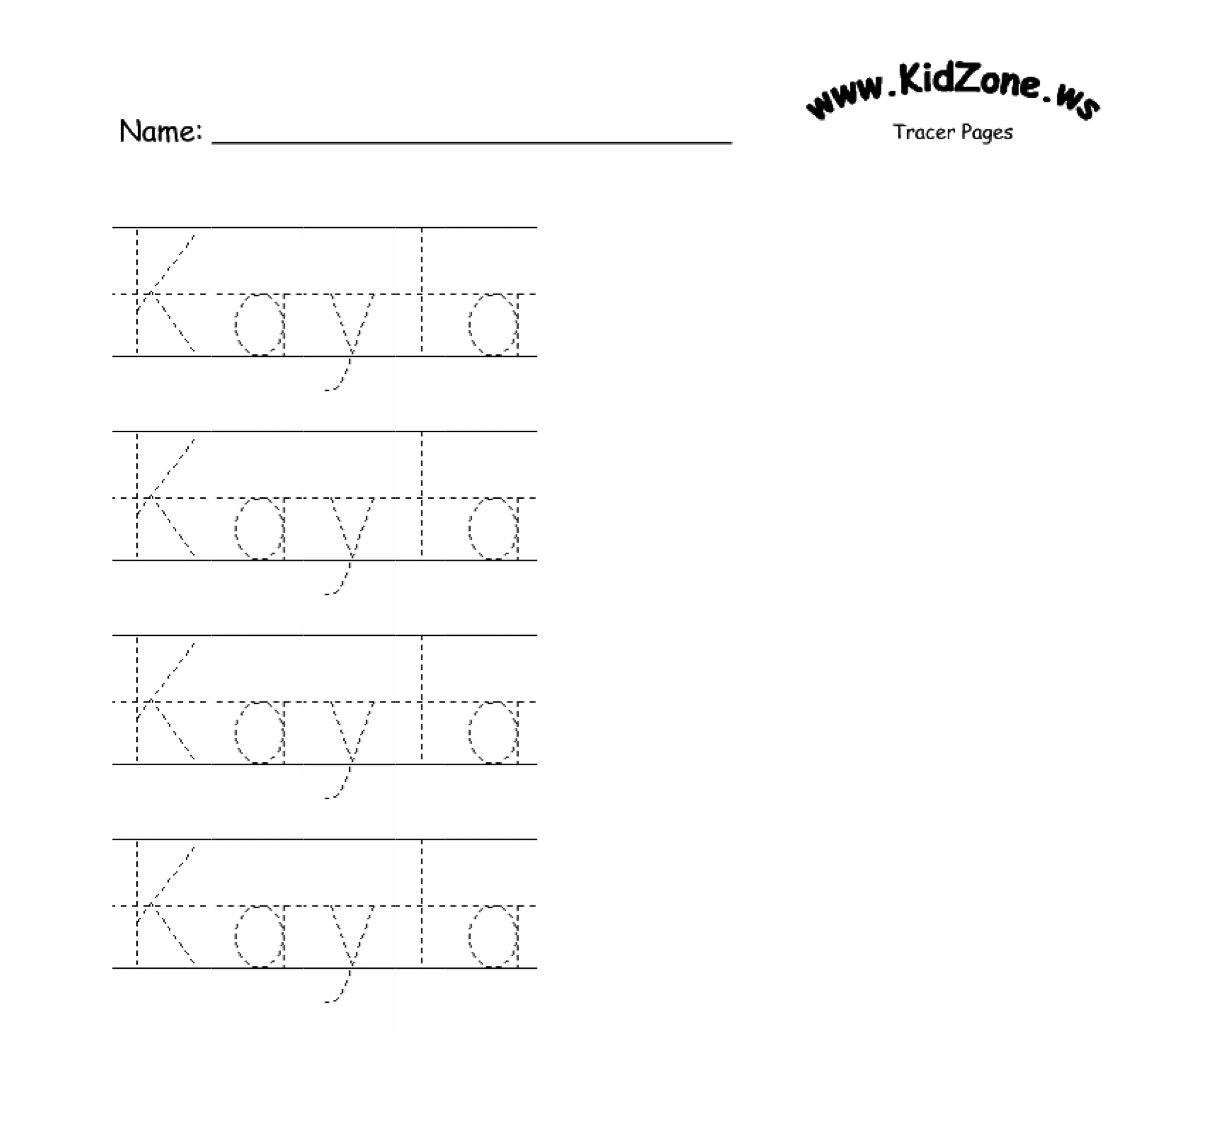 Custom Name Tracer Pages | Preschool Writing, Name Tracing intended for Tracing Name David